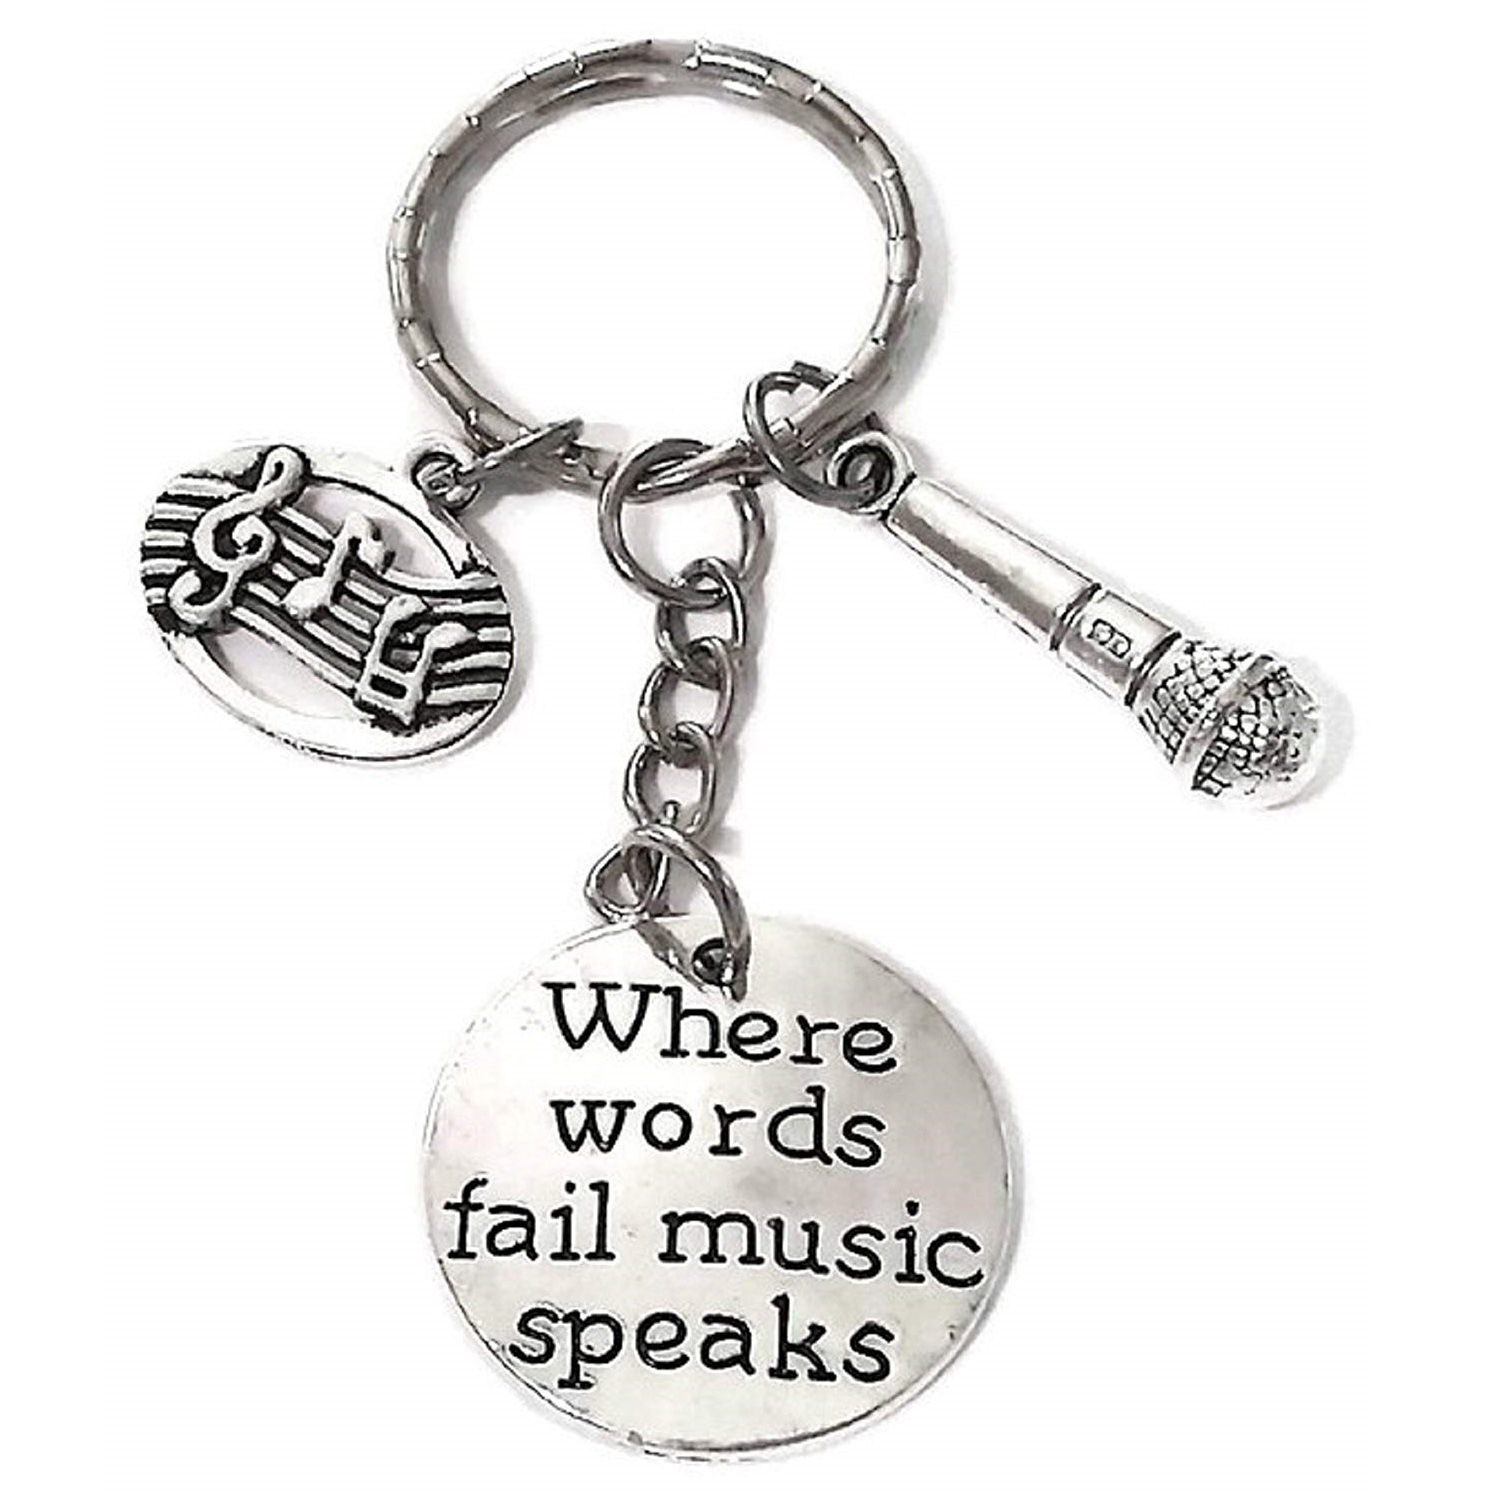 Singer Charm Pendant Music Microphone Art Professional Keychain Where Words Fail Music Speaks Unisex Alloy Jewelry key chain